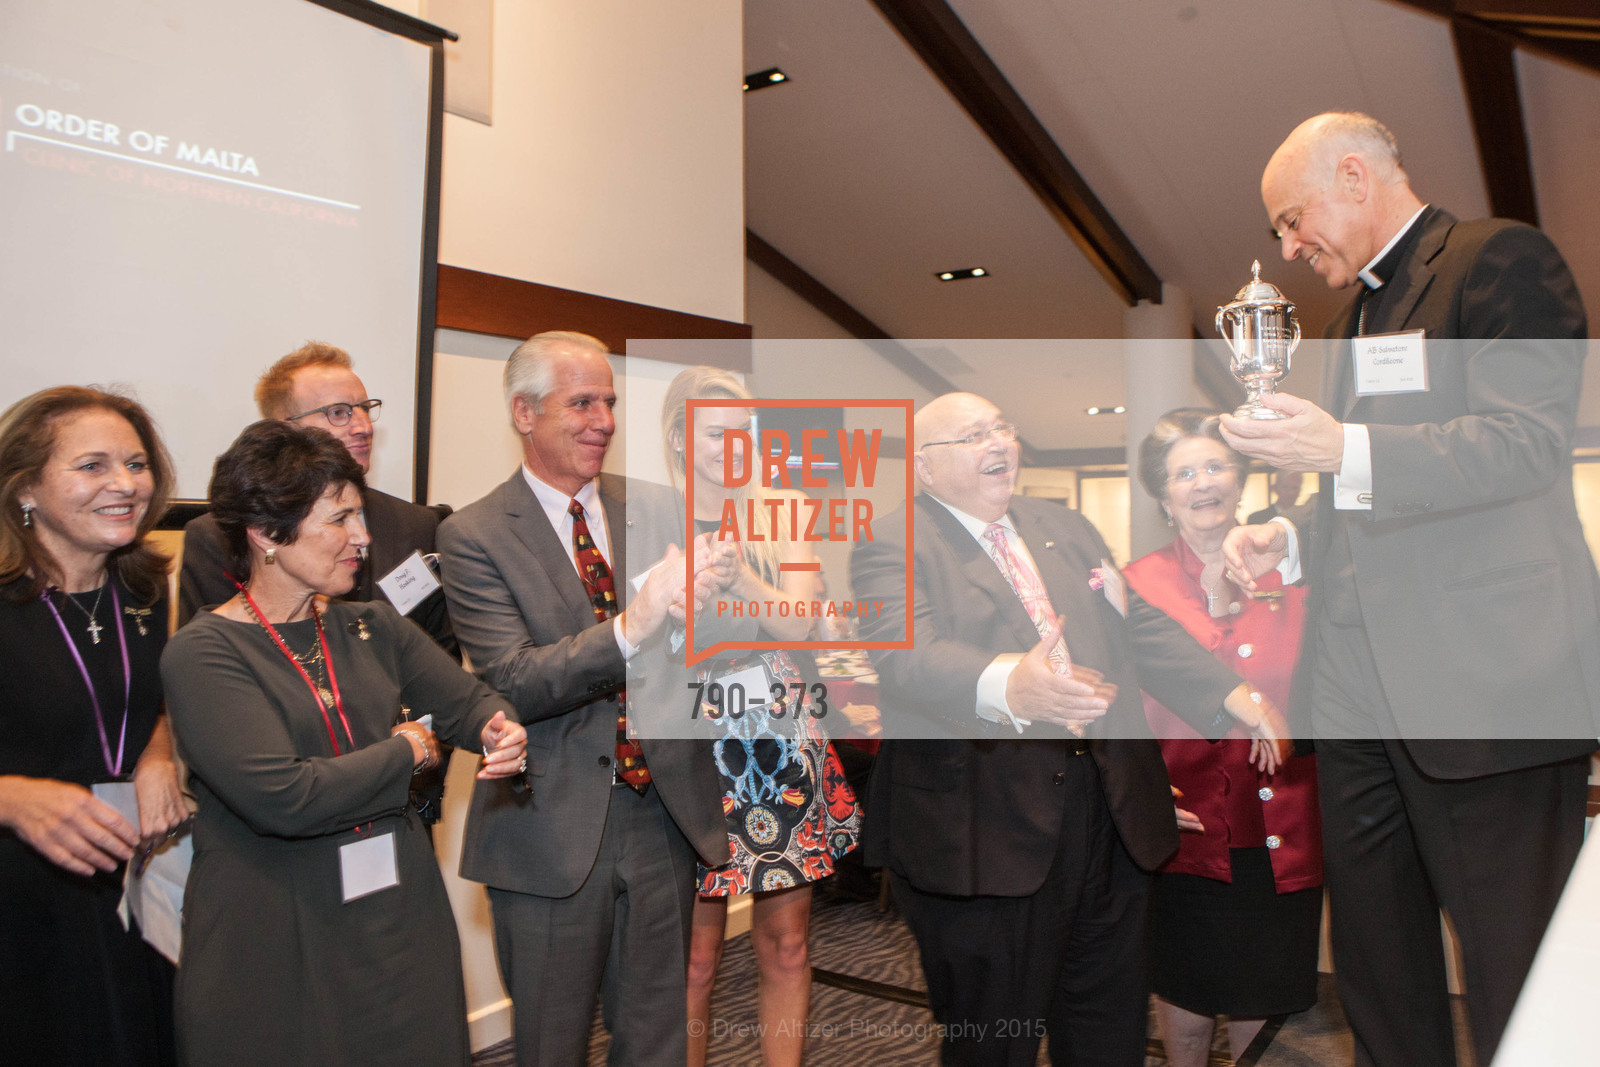 Lisa Simpson, Laura Hosking, Doug Hosking, Katie Hosking, Tony Sanchez-Corea, Lucille Sanchez-Corea, Salvatore Cordileone, Sovereign Order of Malta Presents: A Knight for Champions, 7th Annual Silver Chalice Awards Dinner, St. Francis Yacht Club. 99 Yacht Rd, October 13th, 2015,Drew Altizer, Drew Altizer Photography, full-service agency, private events, San Francisco photographer, photographer california